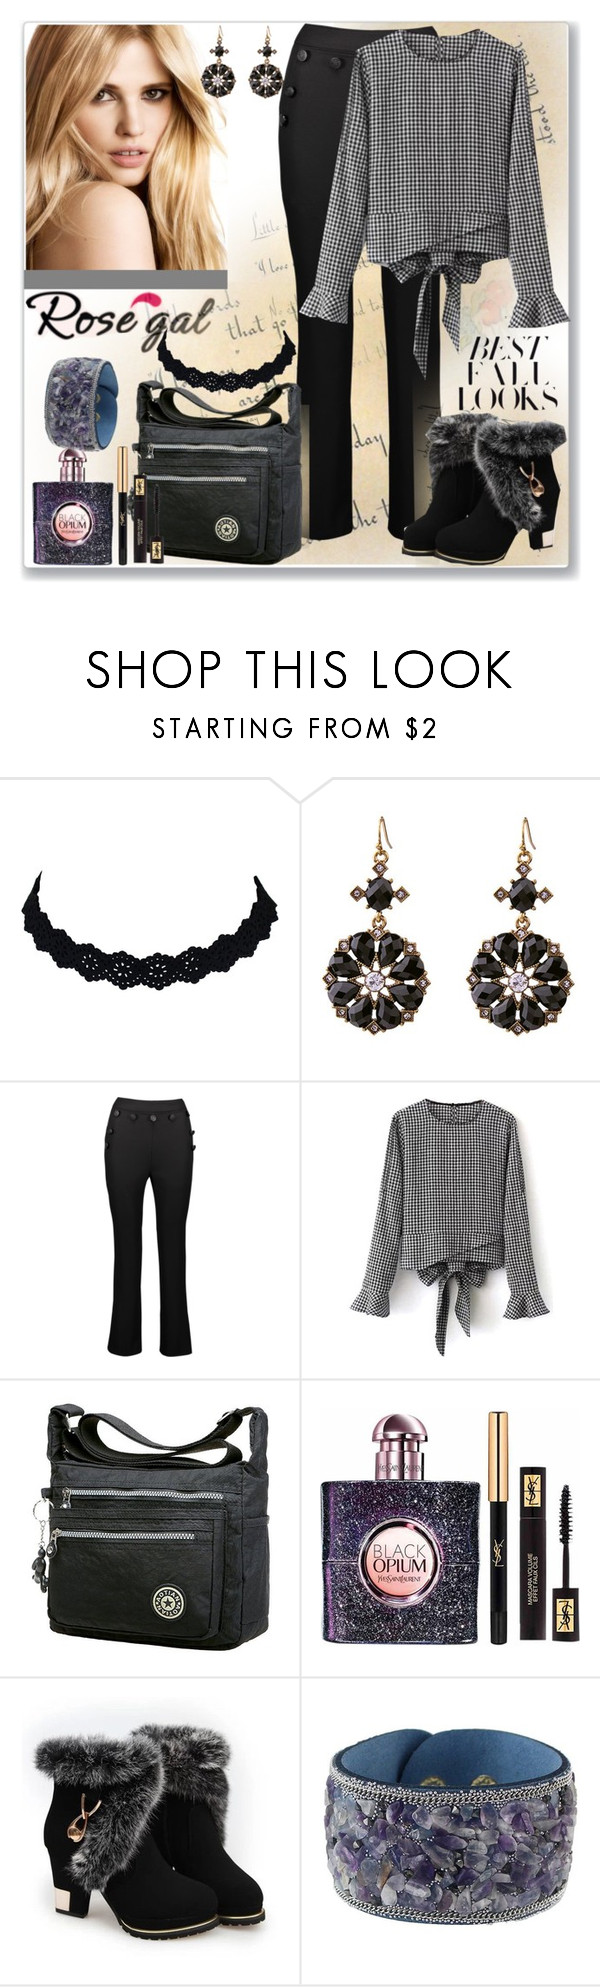 """Blouse - White And Black-33"" by ane-twist ❤ liked on Polyvore featuring Yves Saint Laurent and H&M"